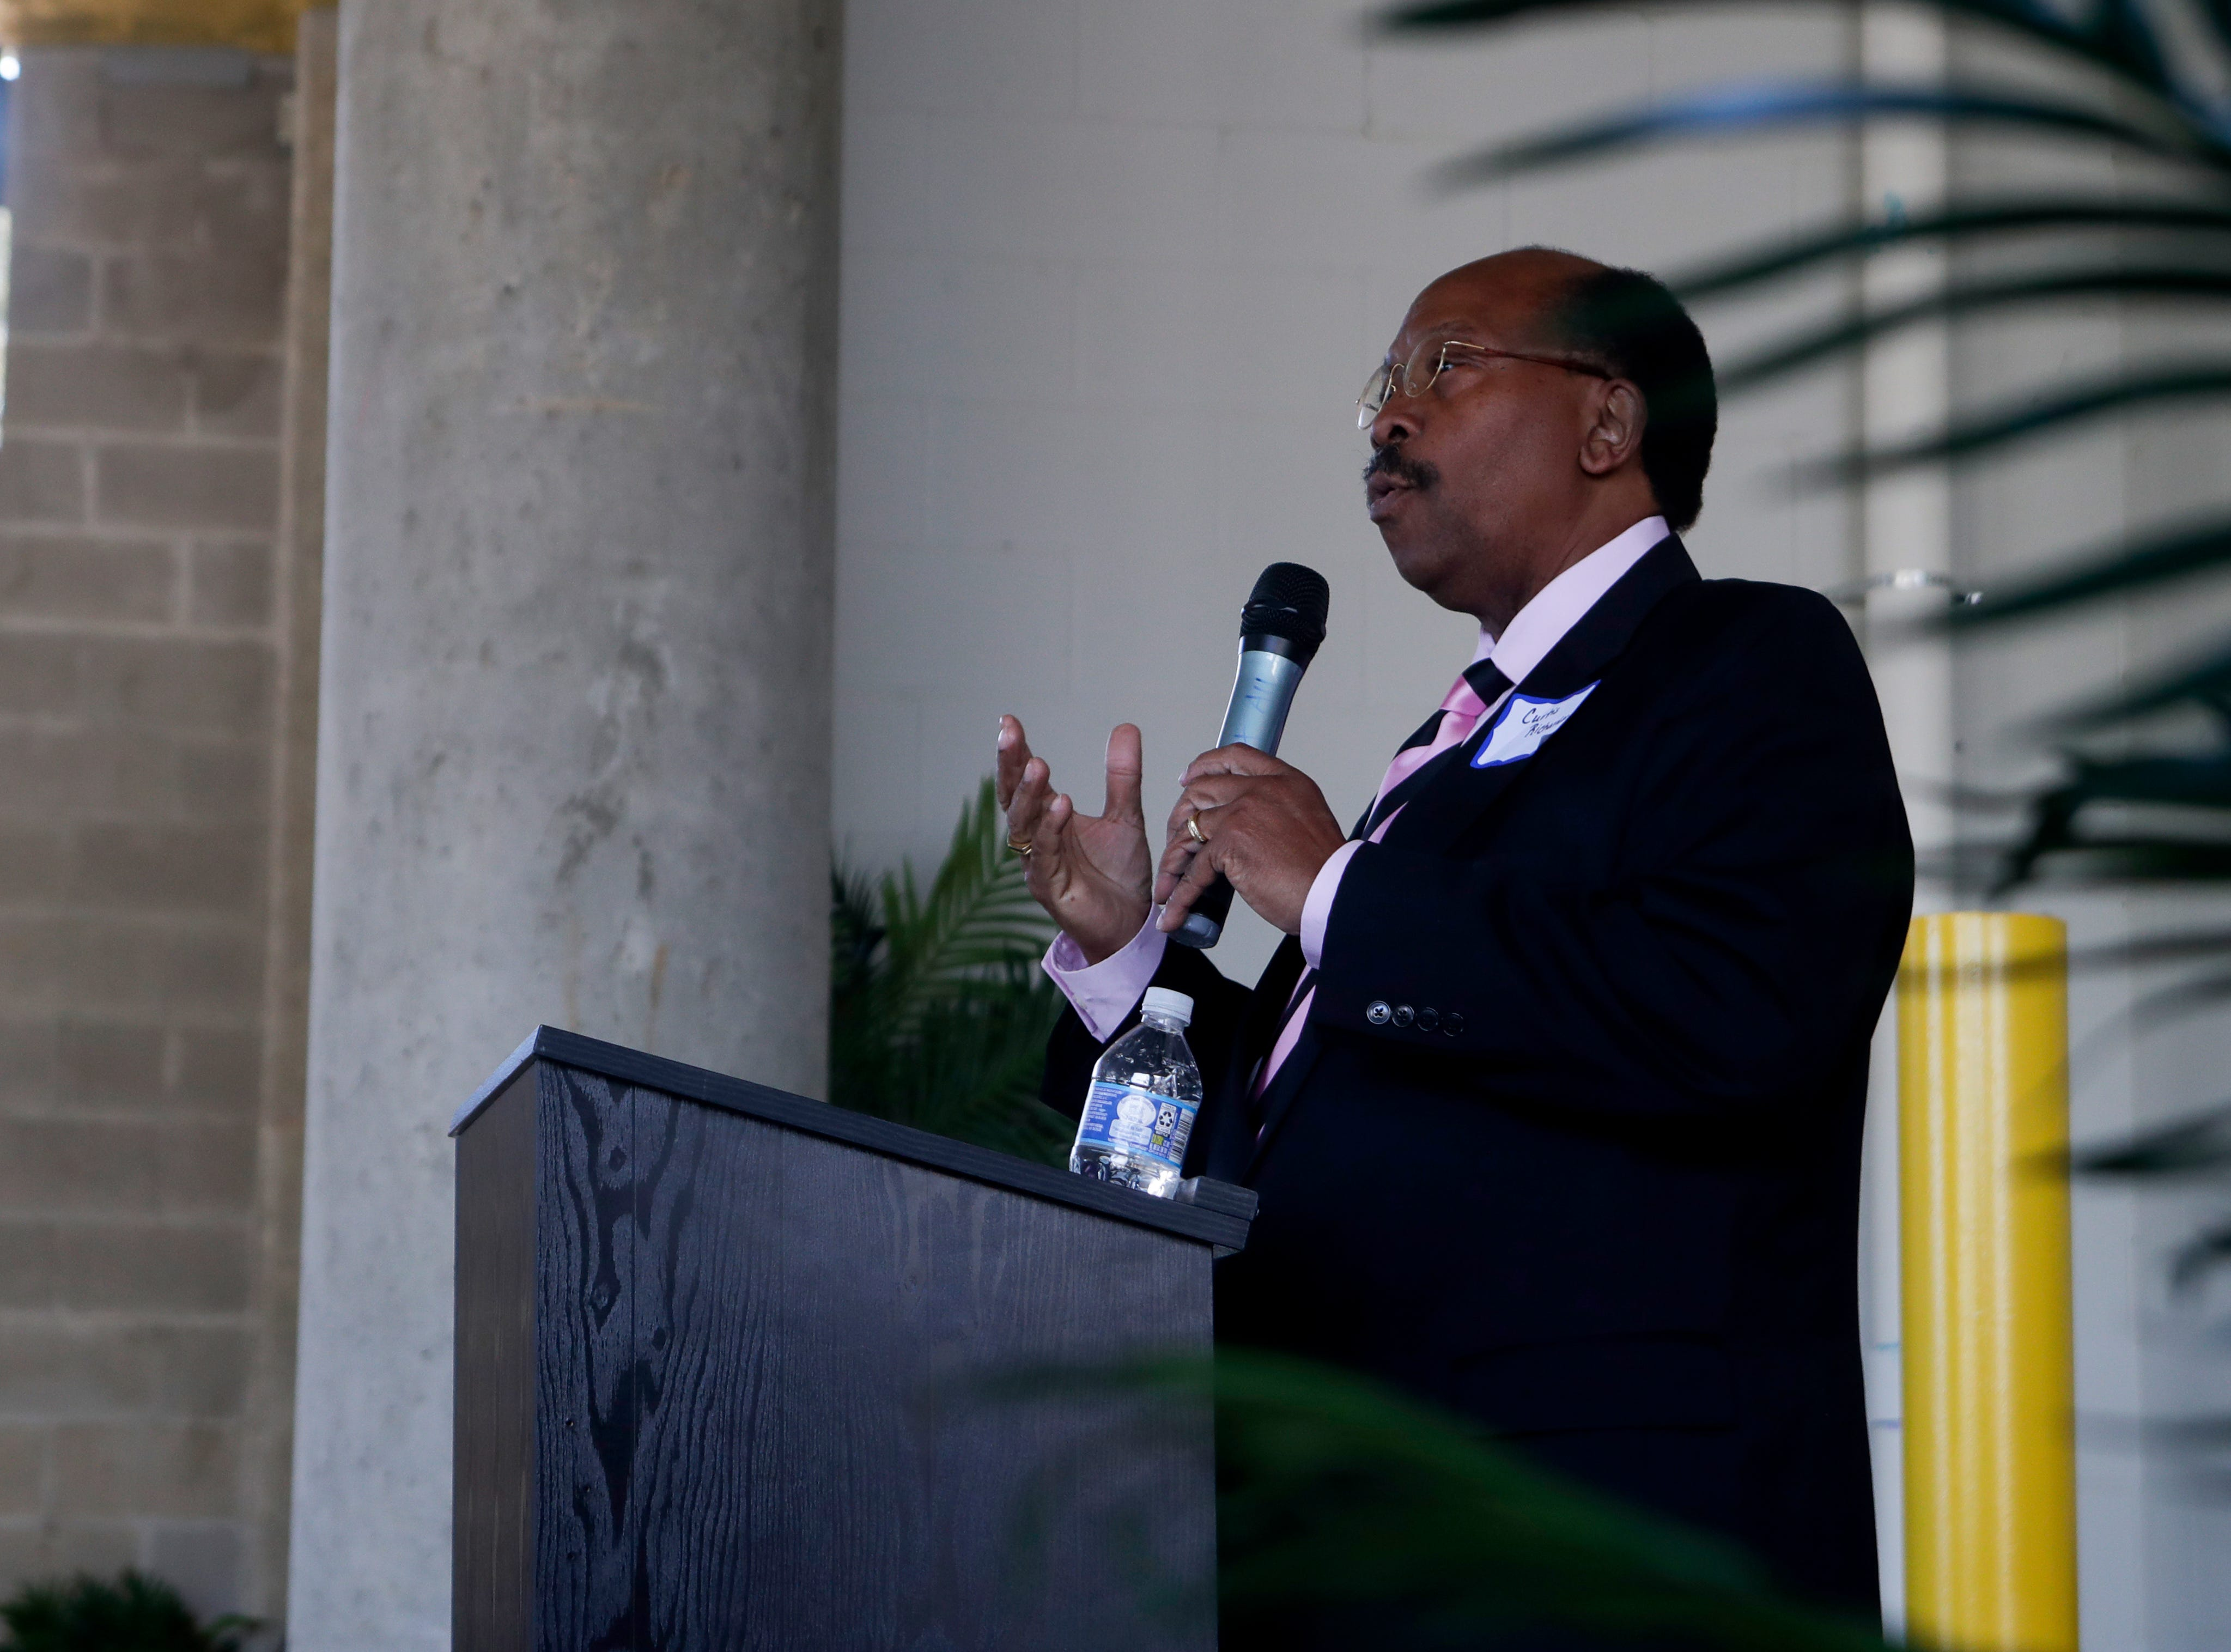 City Commissioner Curtis Richardson speaks during the grand opening celebration for the Casañas Village Apartments at Frenchtown Square Thursday, Jan. 31, 2019.